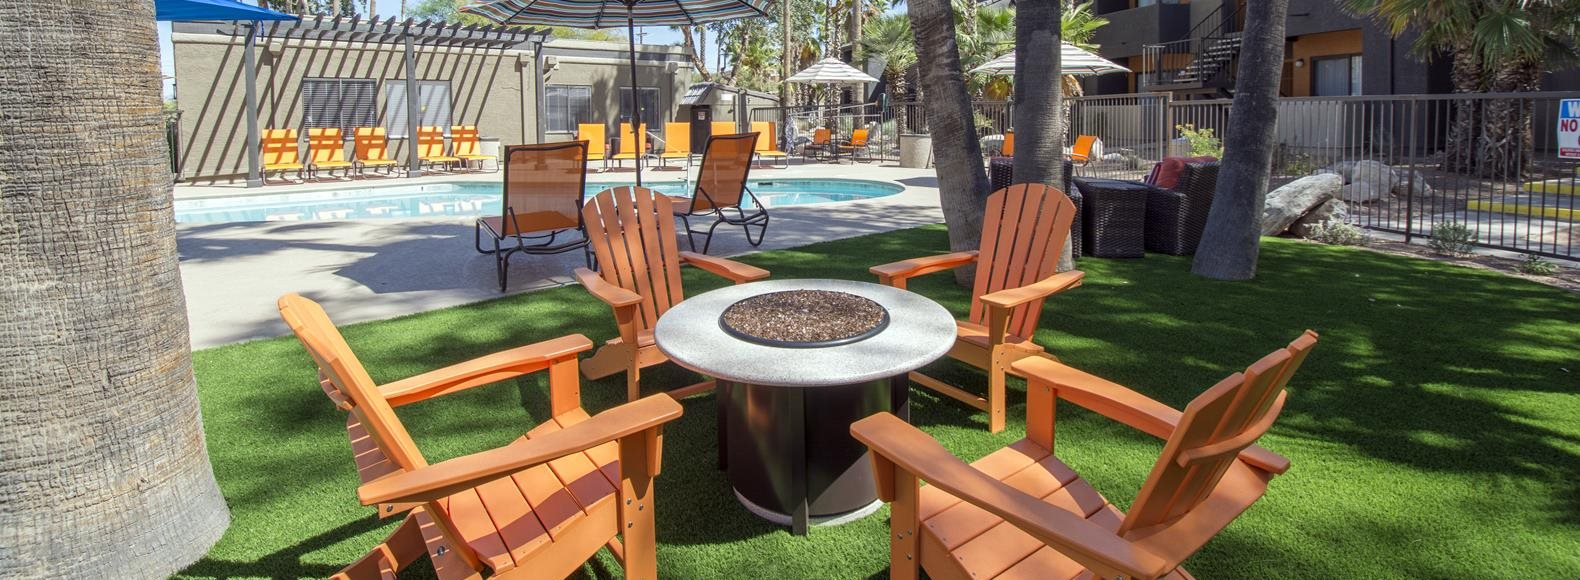 Our outdoor lounge with Adirondack chairs for community residents at Palm Canyon, Tucson, AZ 85741